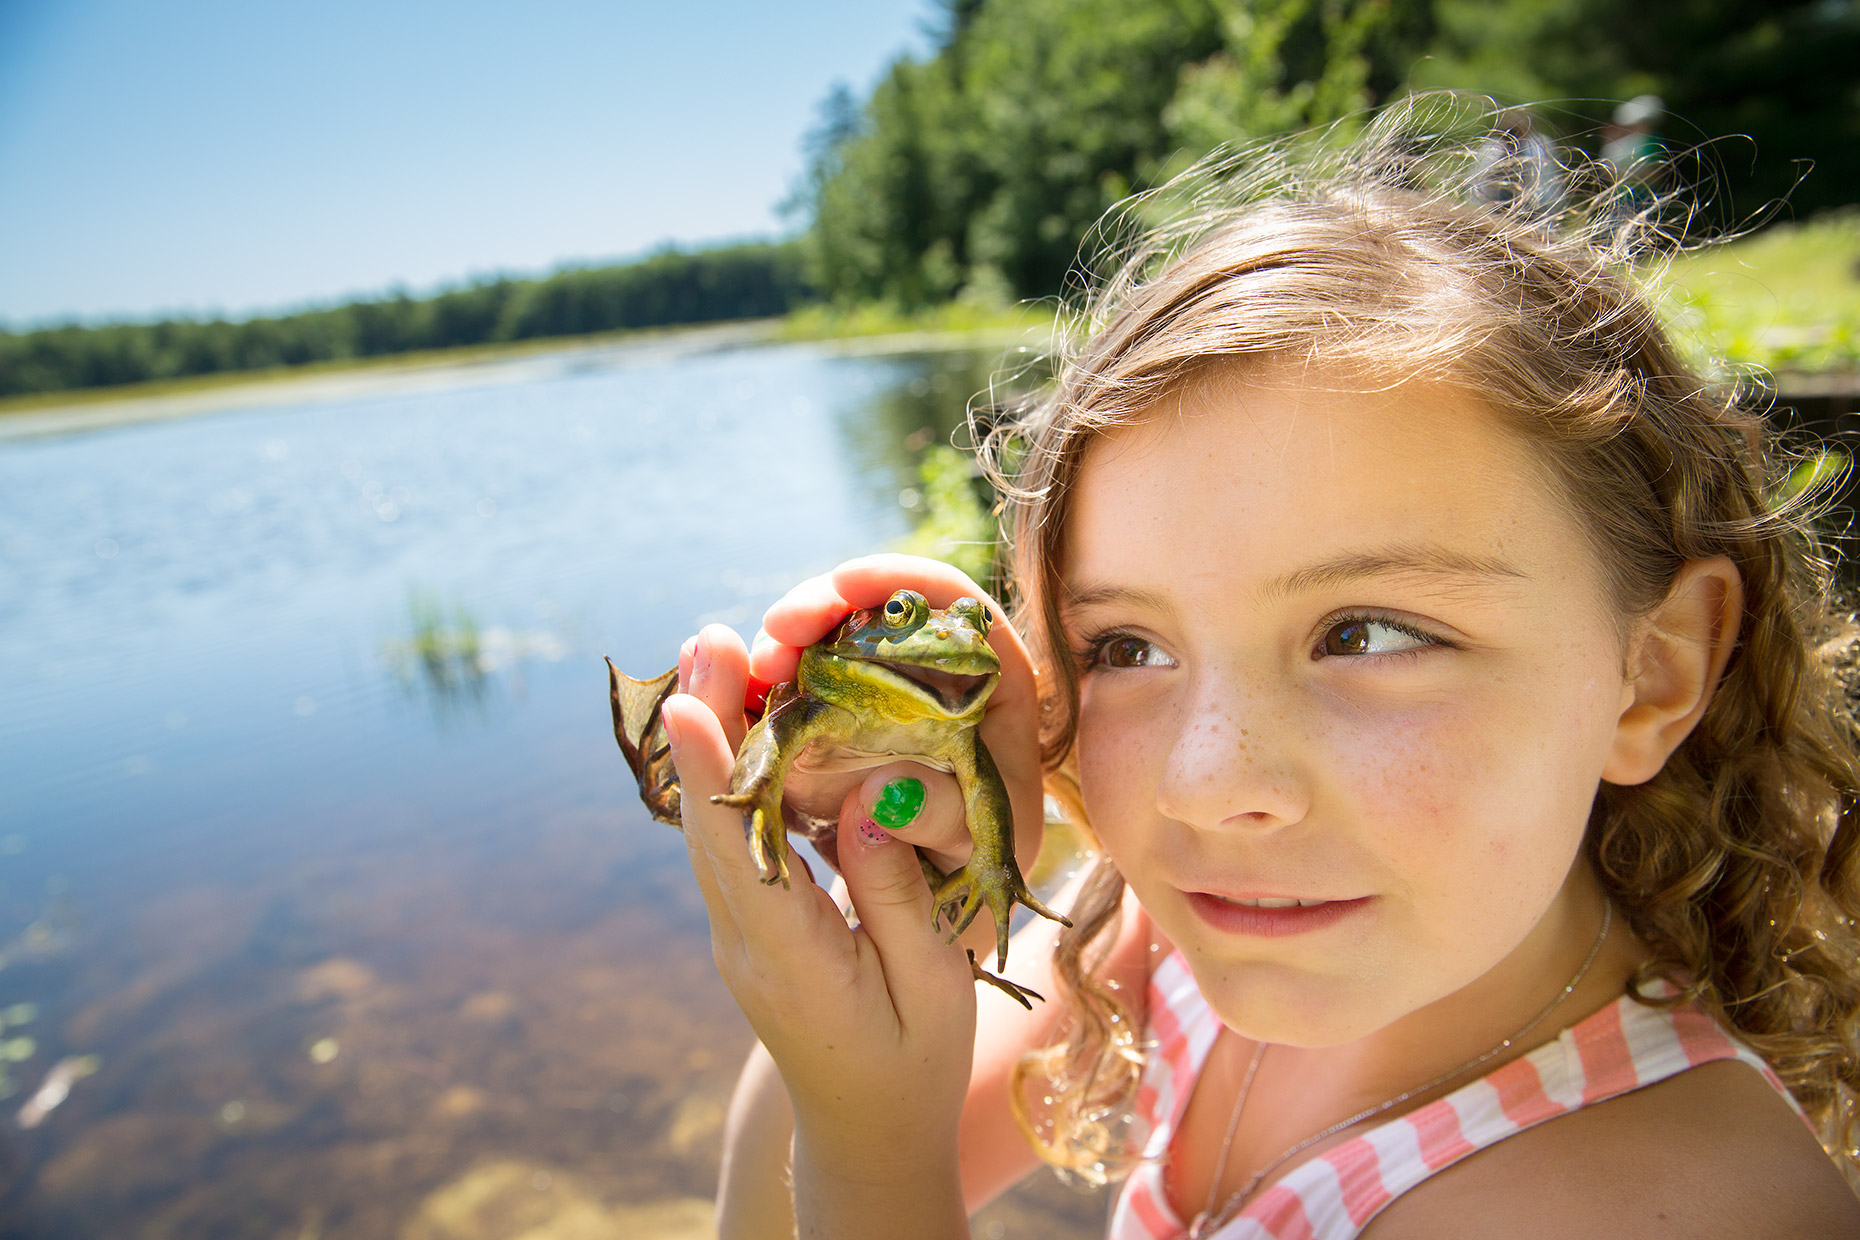 Young girl with bullfrog at a pond. Image created for The Trust for Public Land.